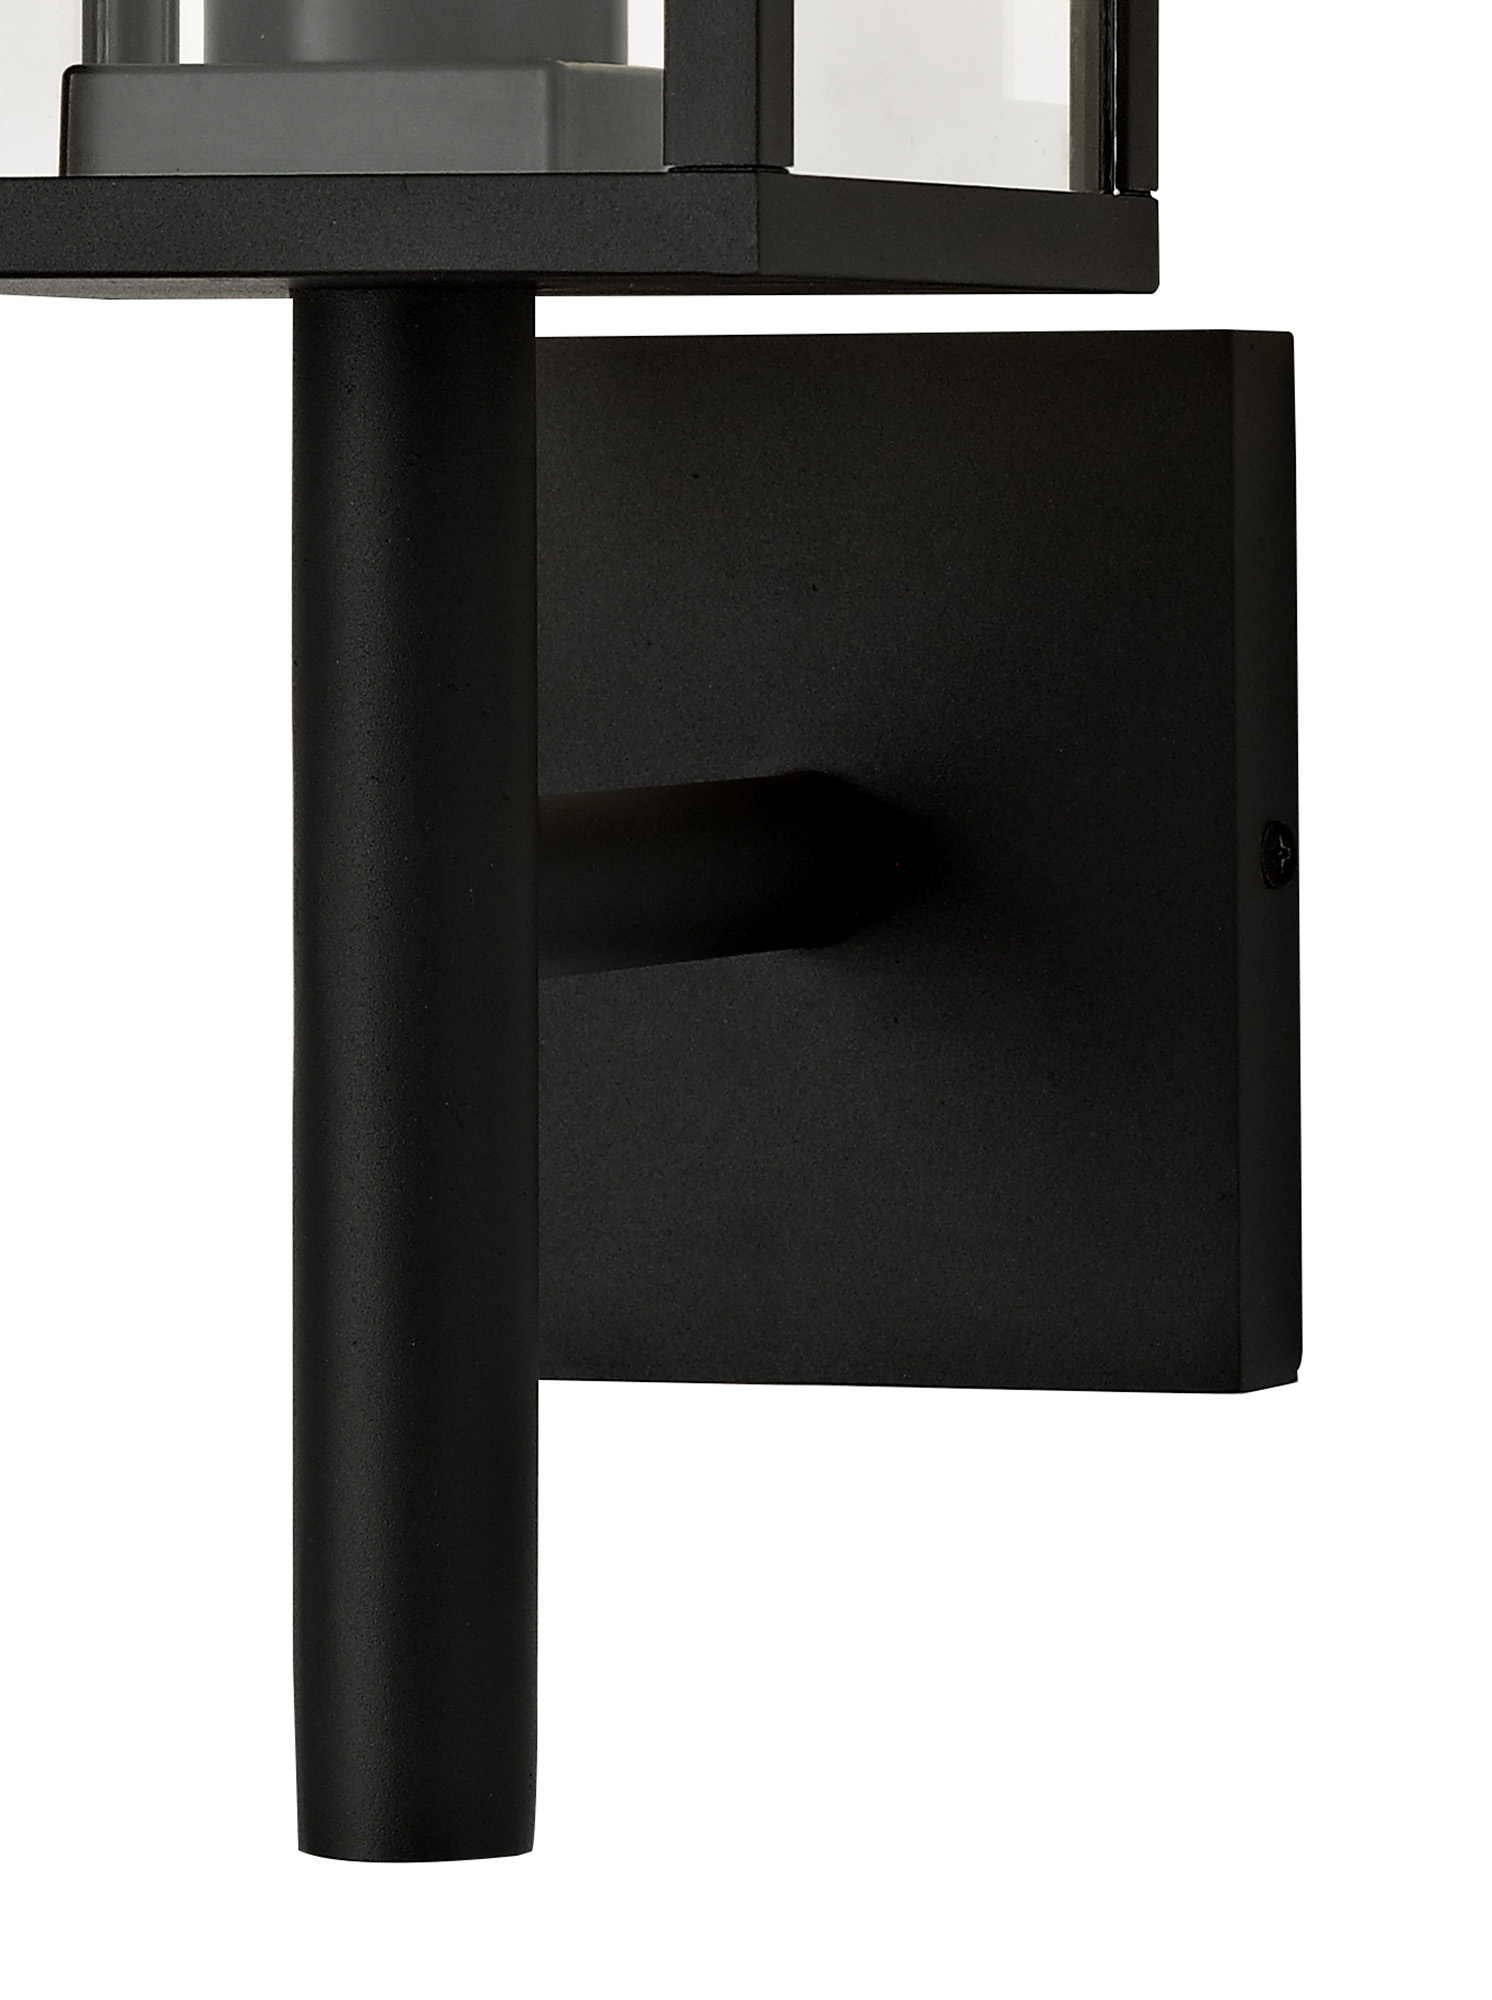 Upward Wall Lamp, 1 x E27, IP54, Graphite Black, 2yrs Warranty